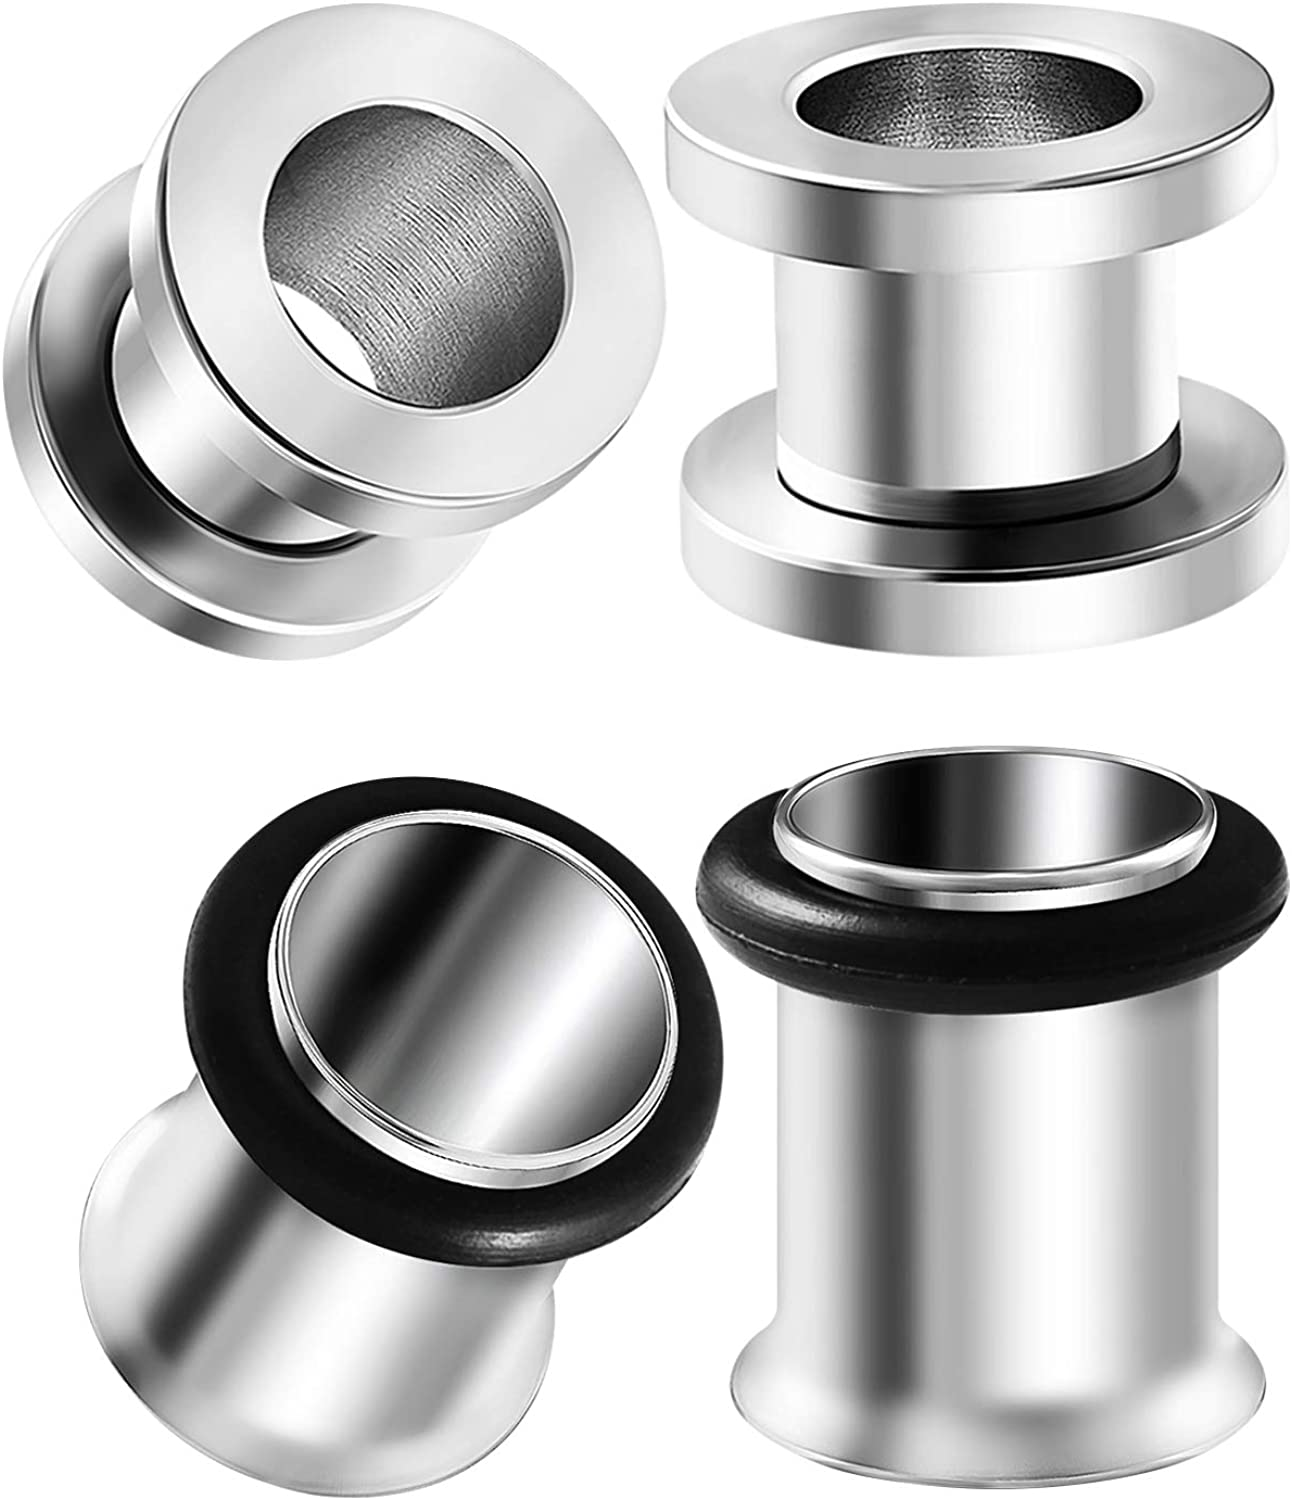 BIG GAUGES 2 Pairs 316L Surgical Steel Single Flared O-Ring Piercing Jewelry Stretcher Ear Screw Flesh Tunnel Lobe Earring Plugs